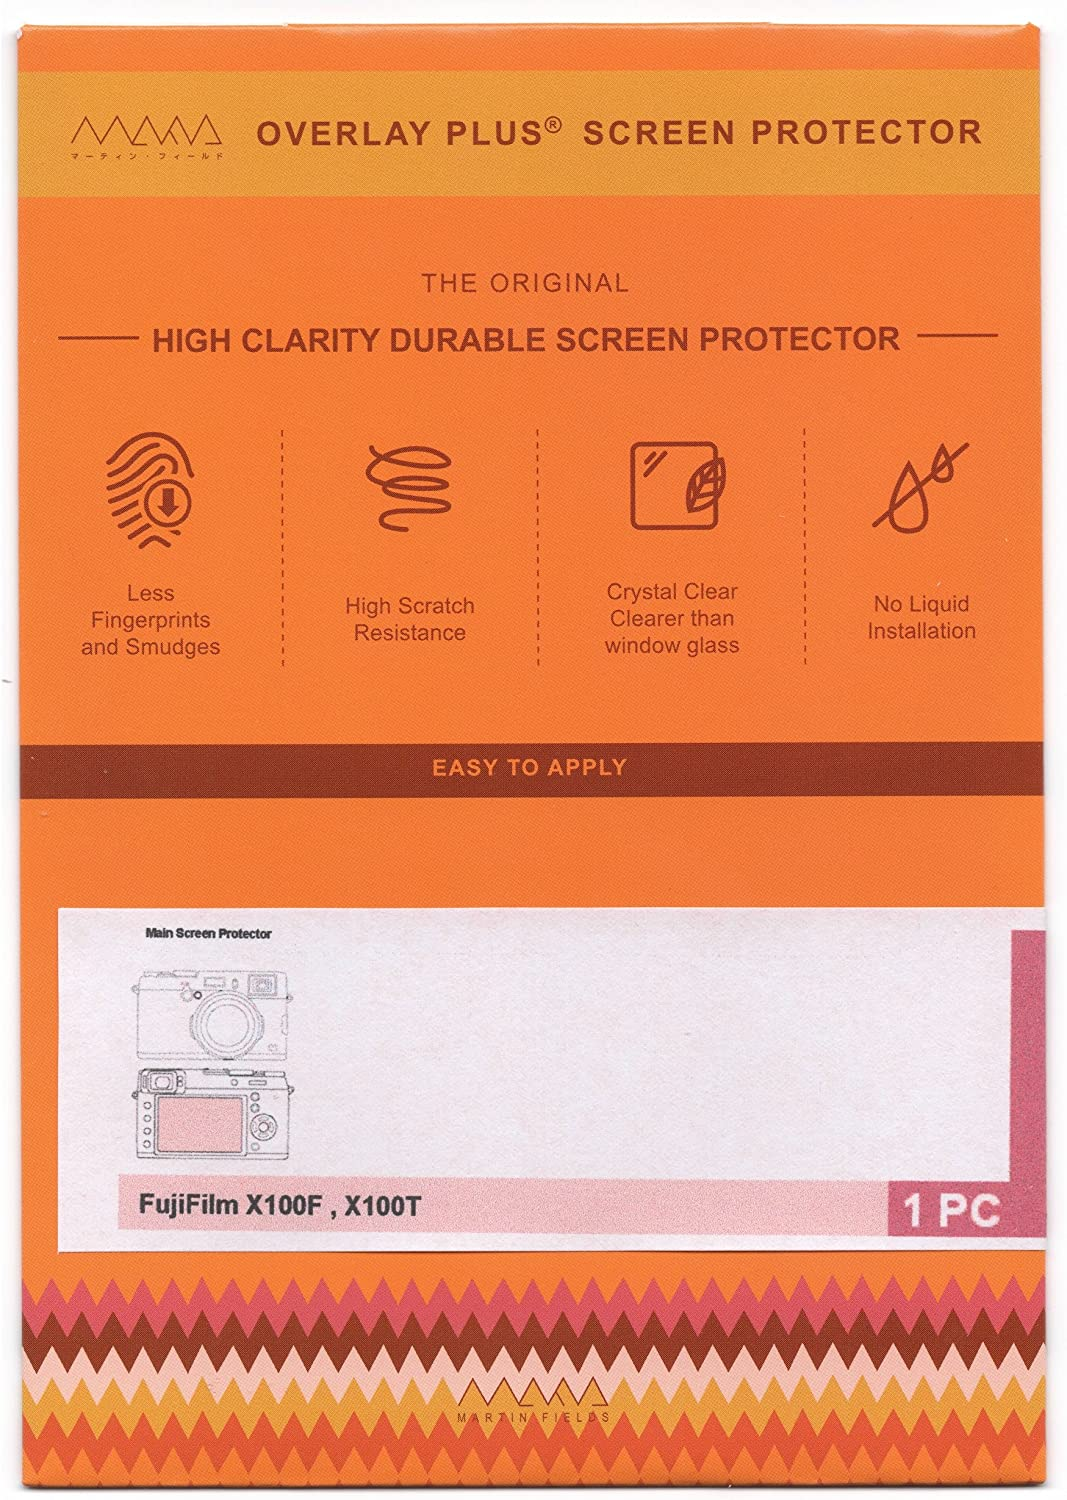 Martin Fields Overlay Plus Screen Protector with Advanced Glass Hard Coating for FujiFilm X100S